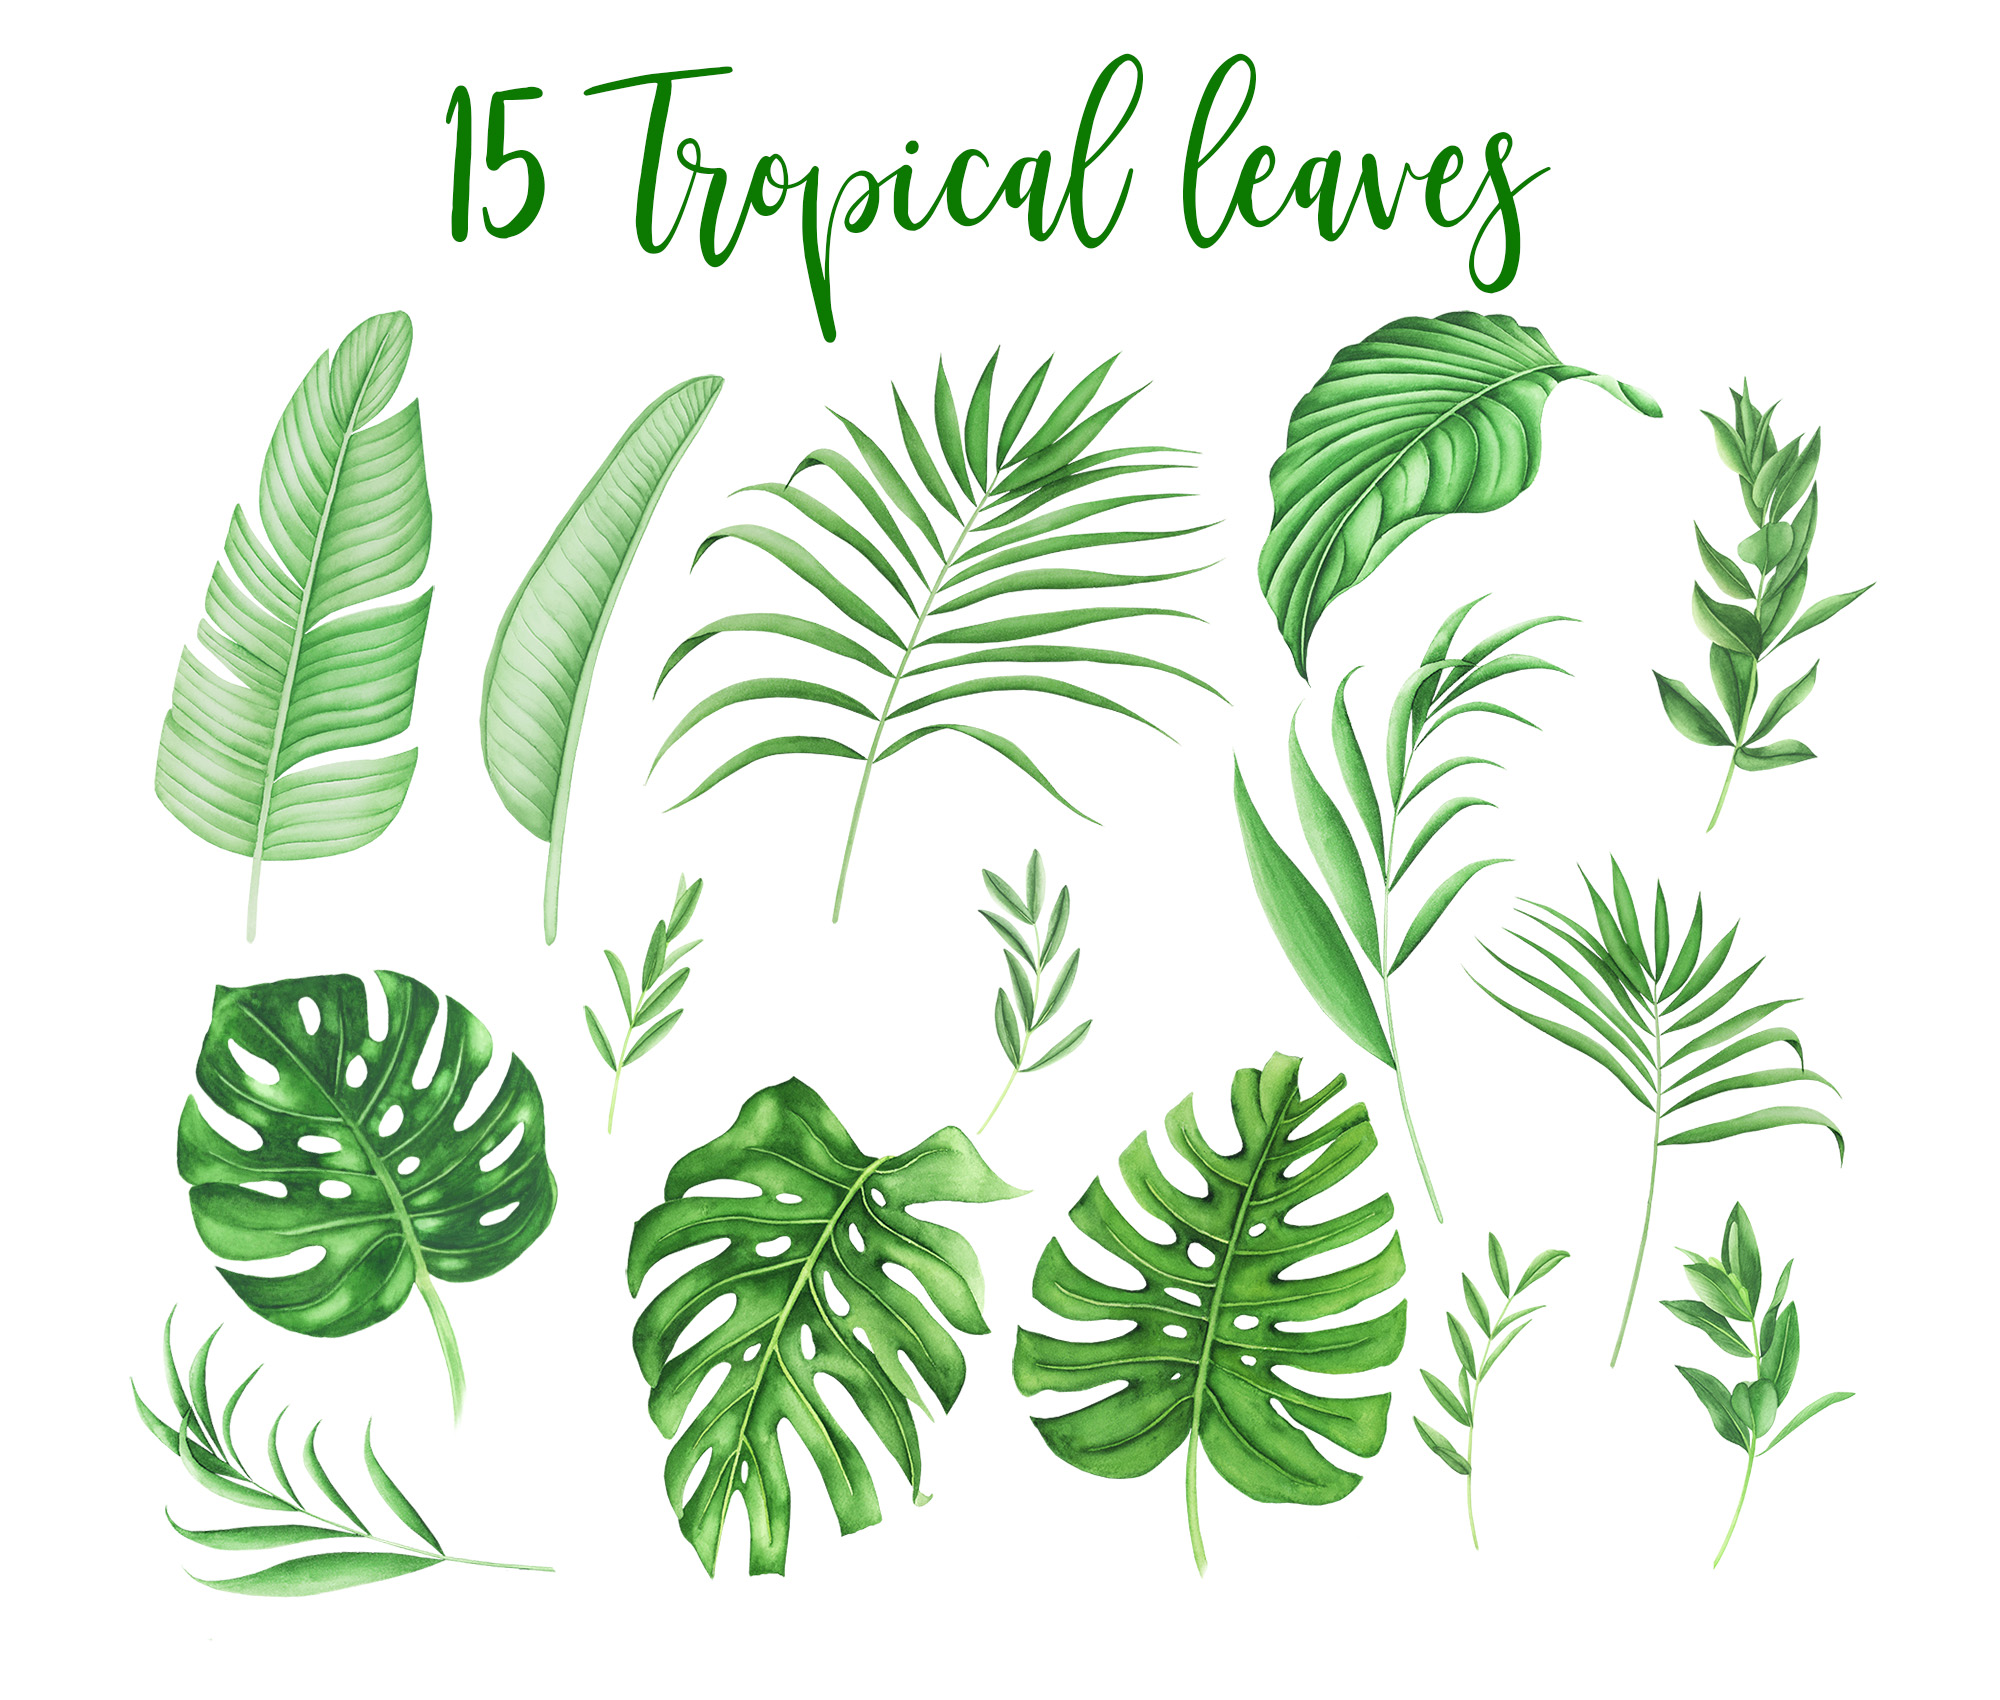 Tropical leaves and flowers clipart example image 2